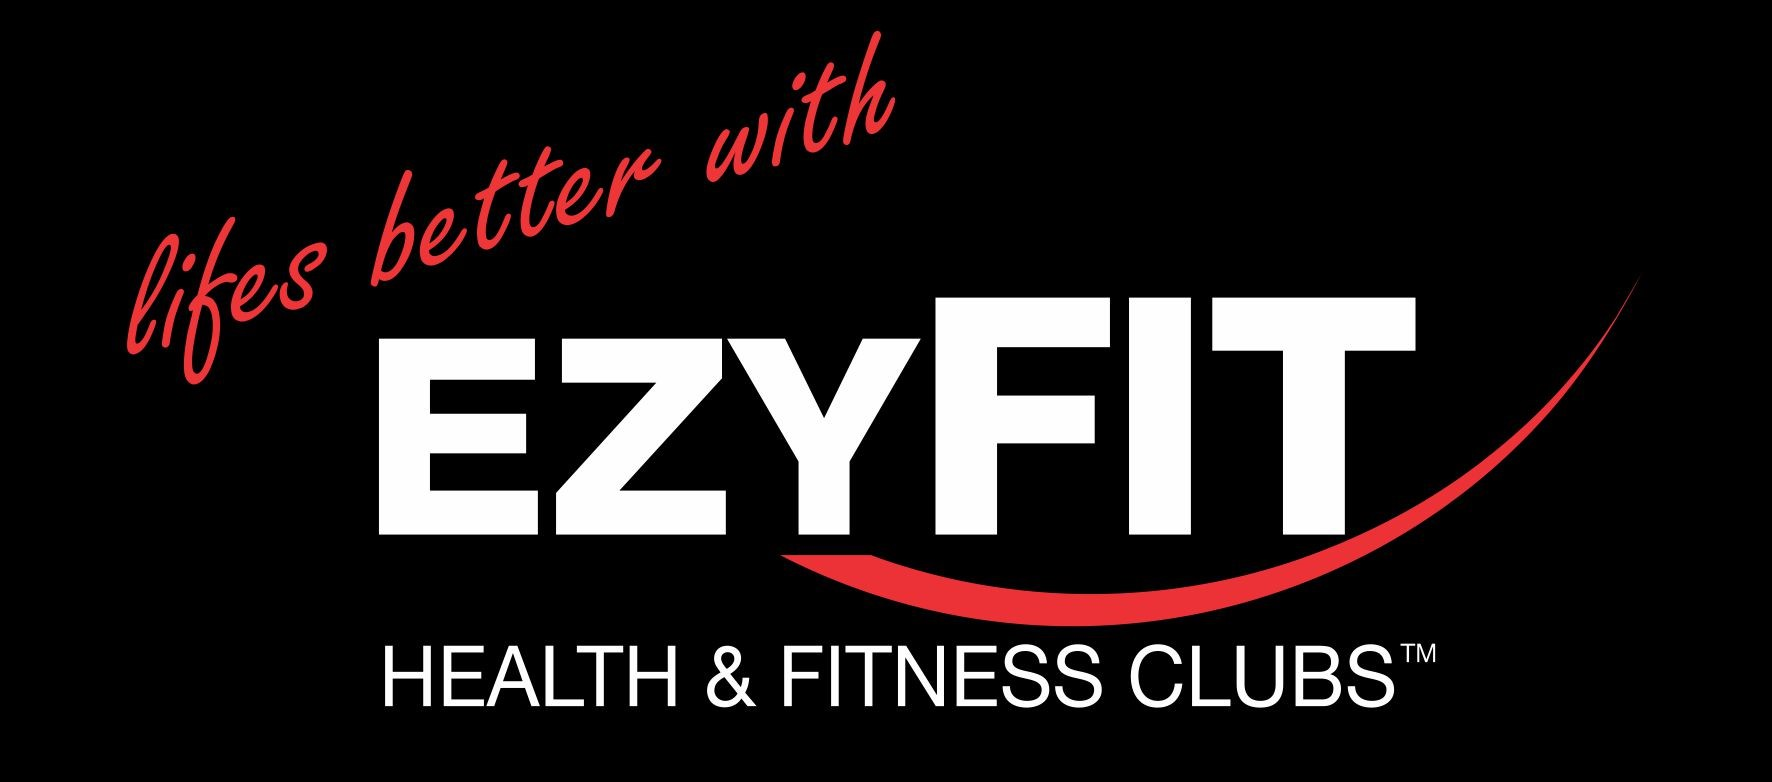 EzyFIT Health and Fitness Club Kawana